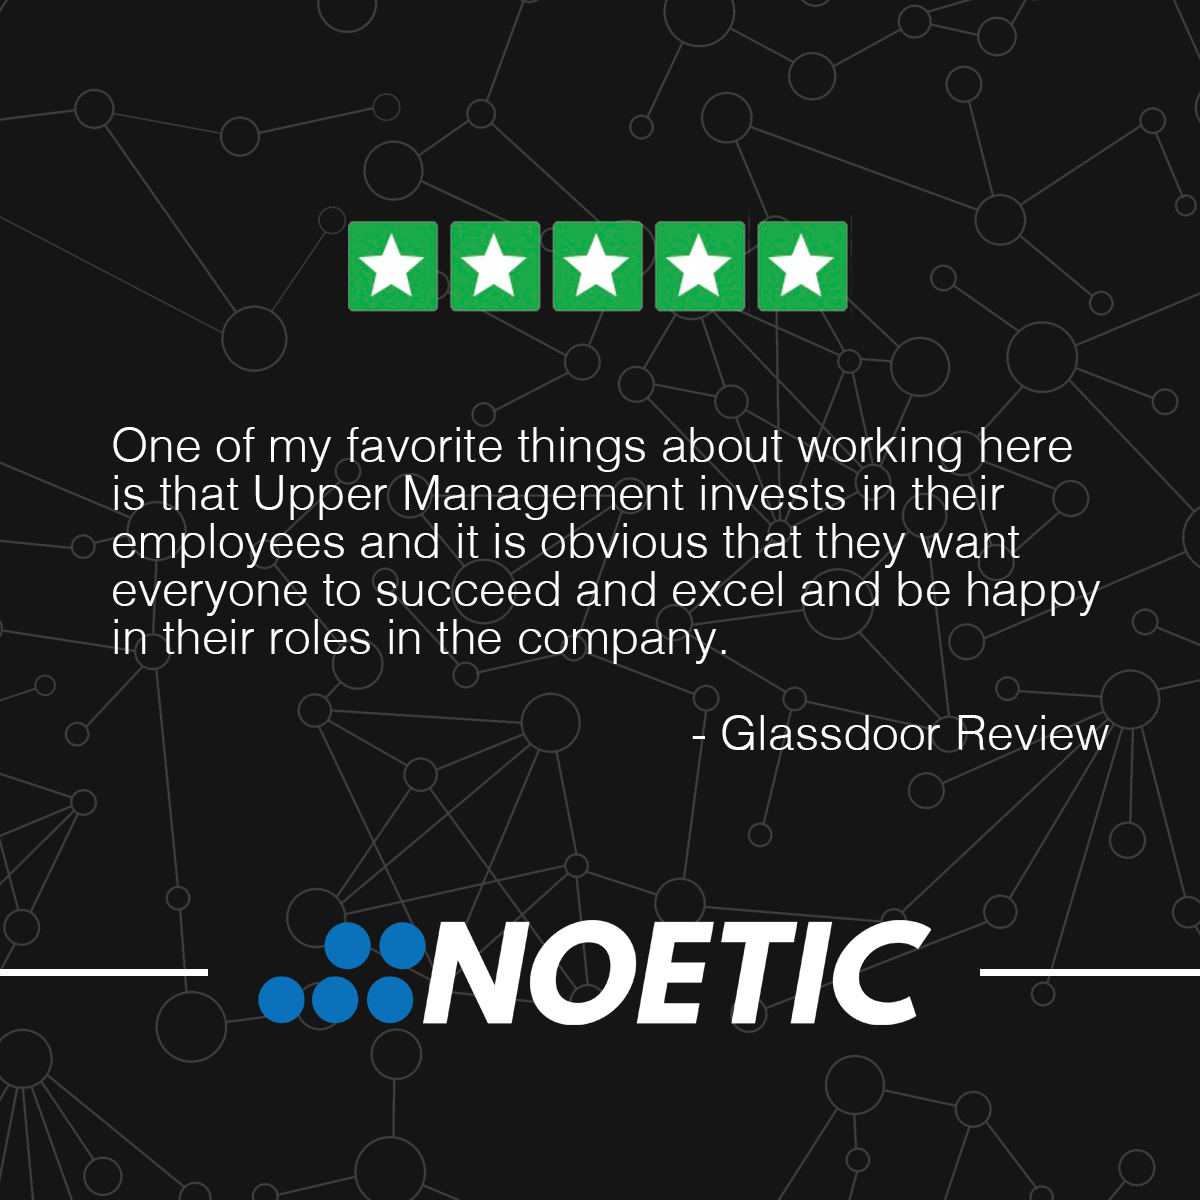 Noetic is proud to provide a work environment and culture that our team members can succeed in and be happy to support. Connect with us and stay updated on opportunities to join our team! #LifeWorkNoetic #Huntsville #Culture #SmallBusiness https://t.co/AgLyqX5dGk